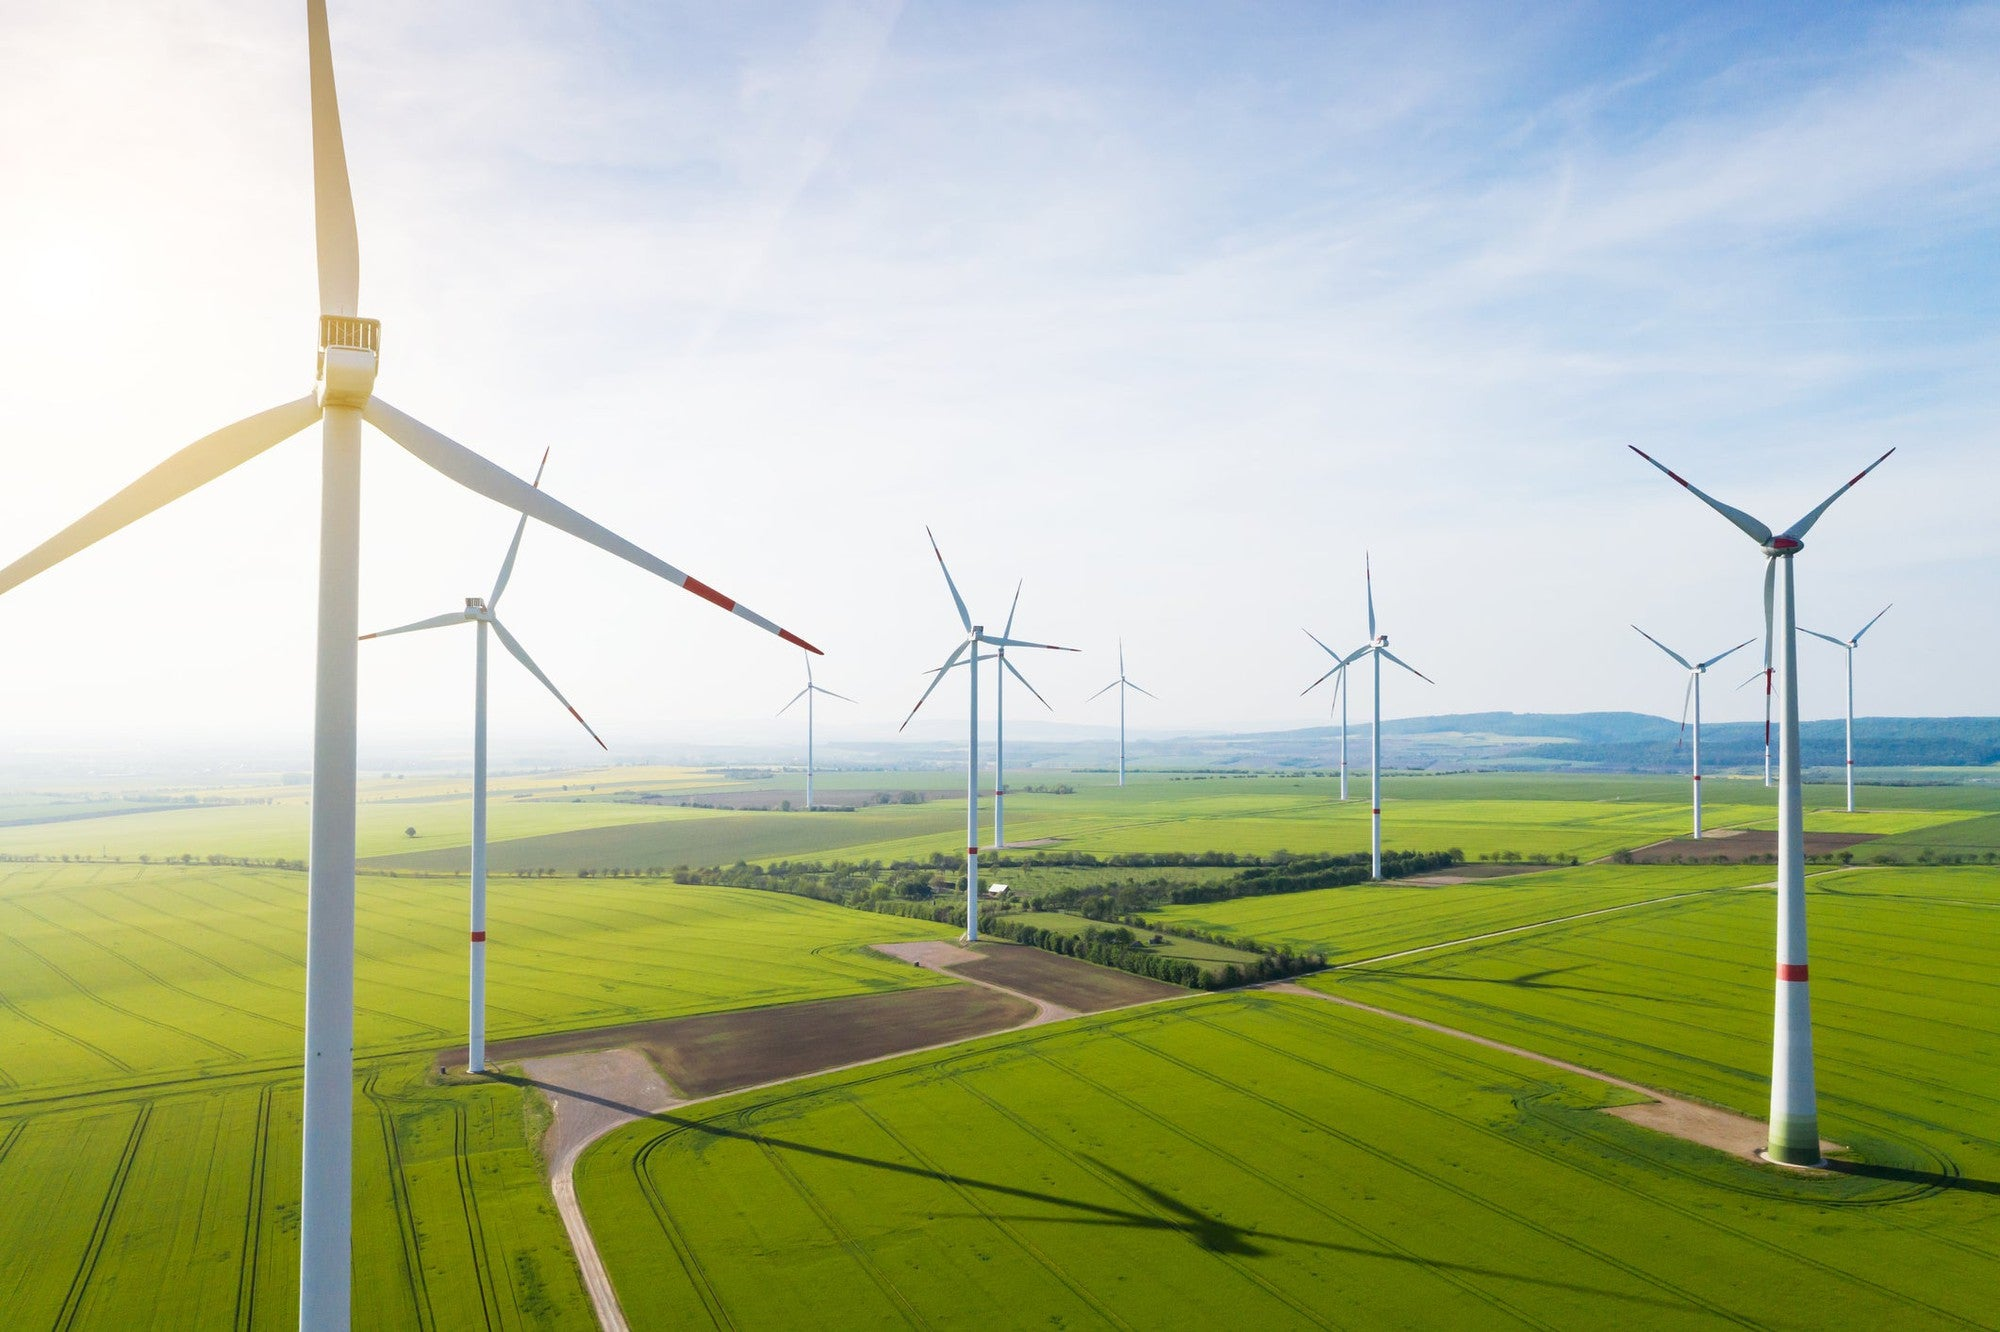 Down 53% From Its High, Is This Renewable Energy Stock a Buy? Daniel Foelber | Jul 31, 2021